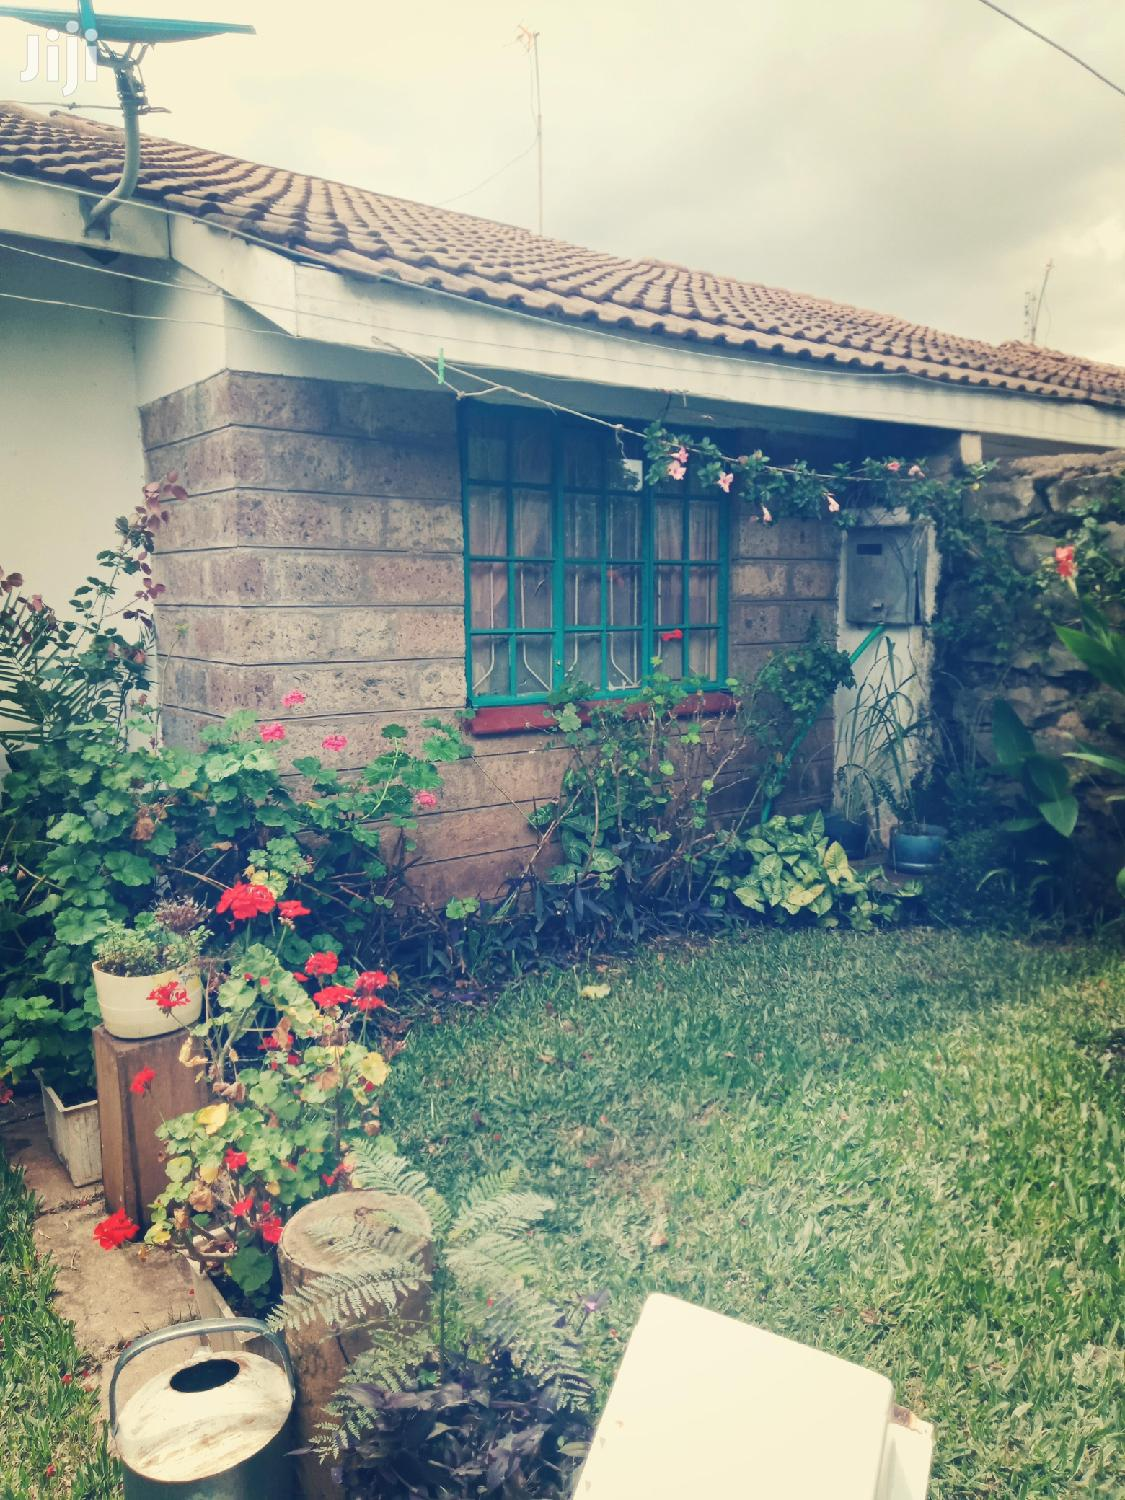 Home Stay/ Rooms to Let